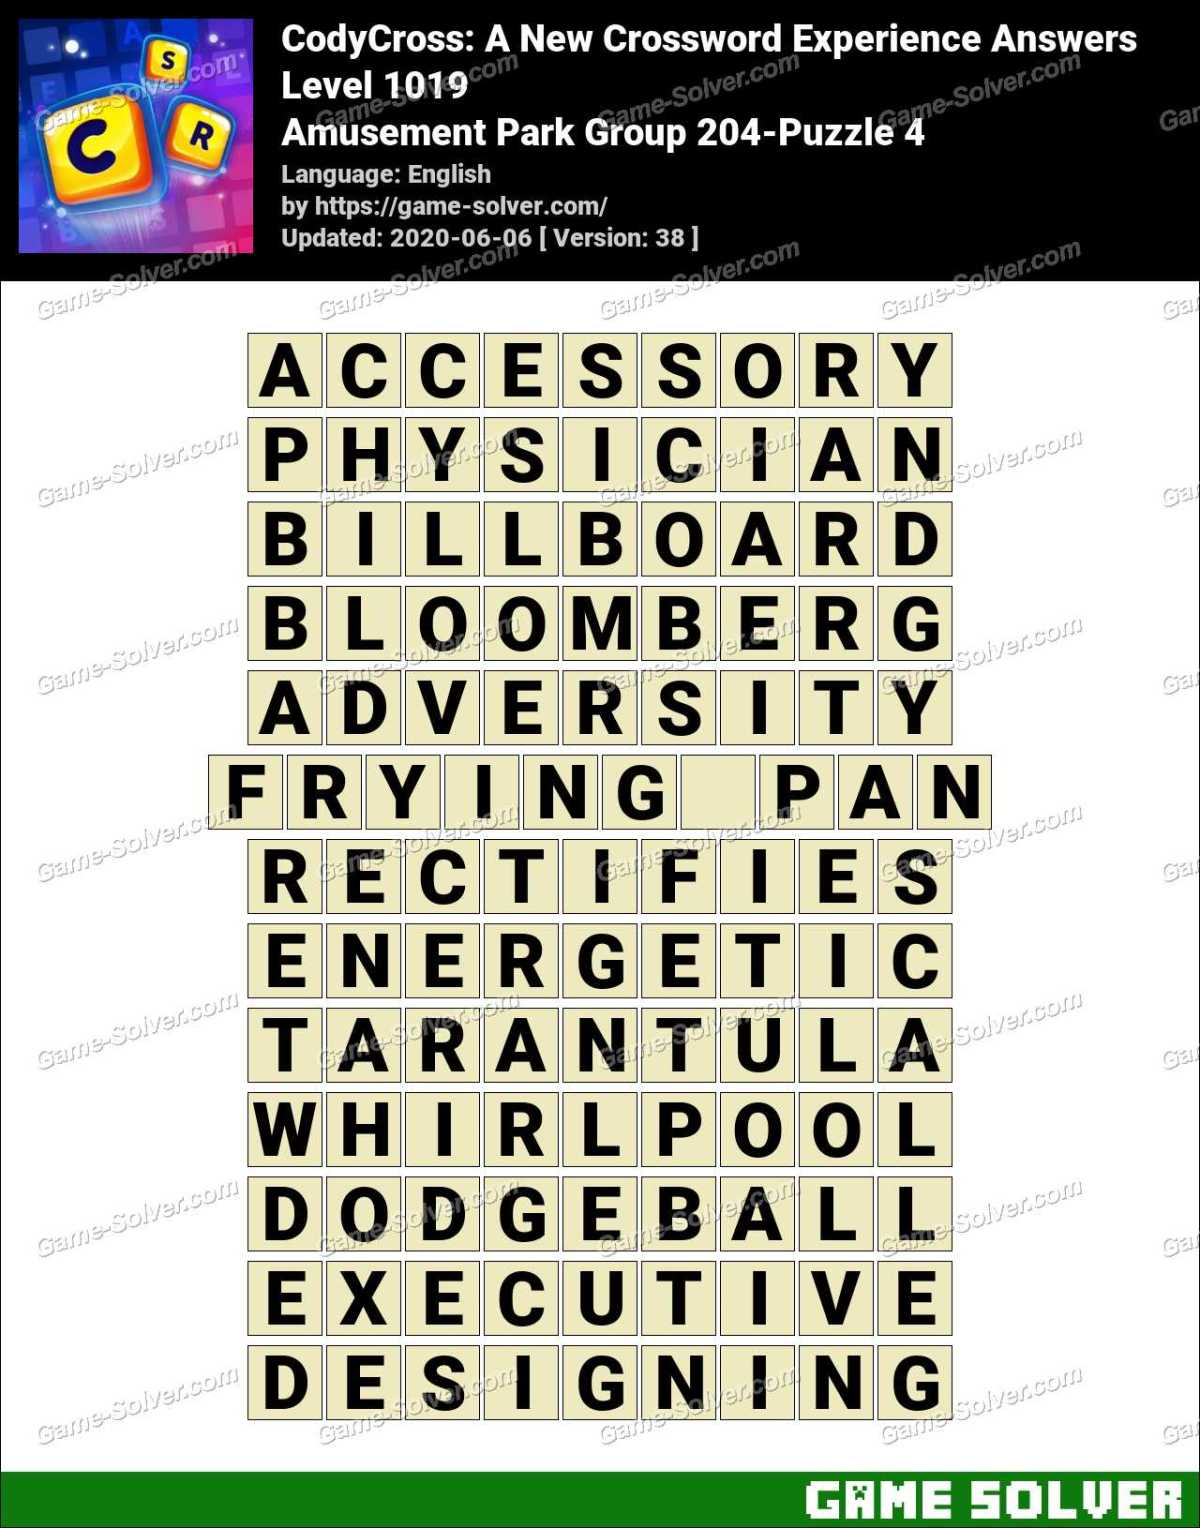 CodyCross Amusement Park Group 204-Puzzle 4 Answers